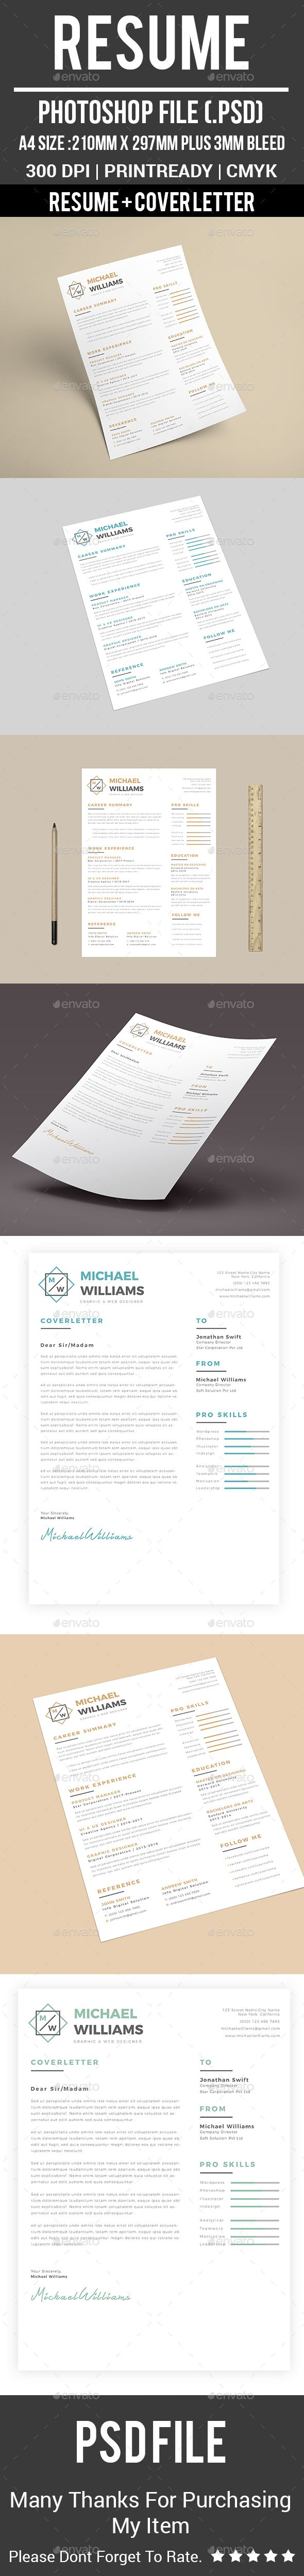 Cosmetology Resume%0A Resume